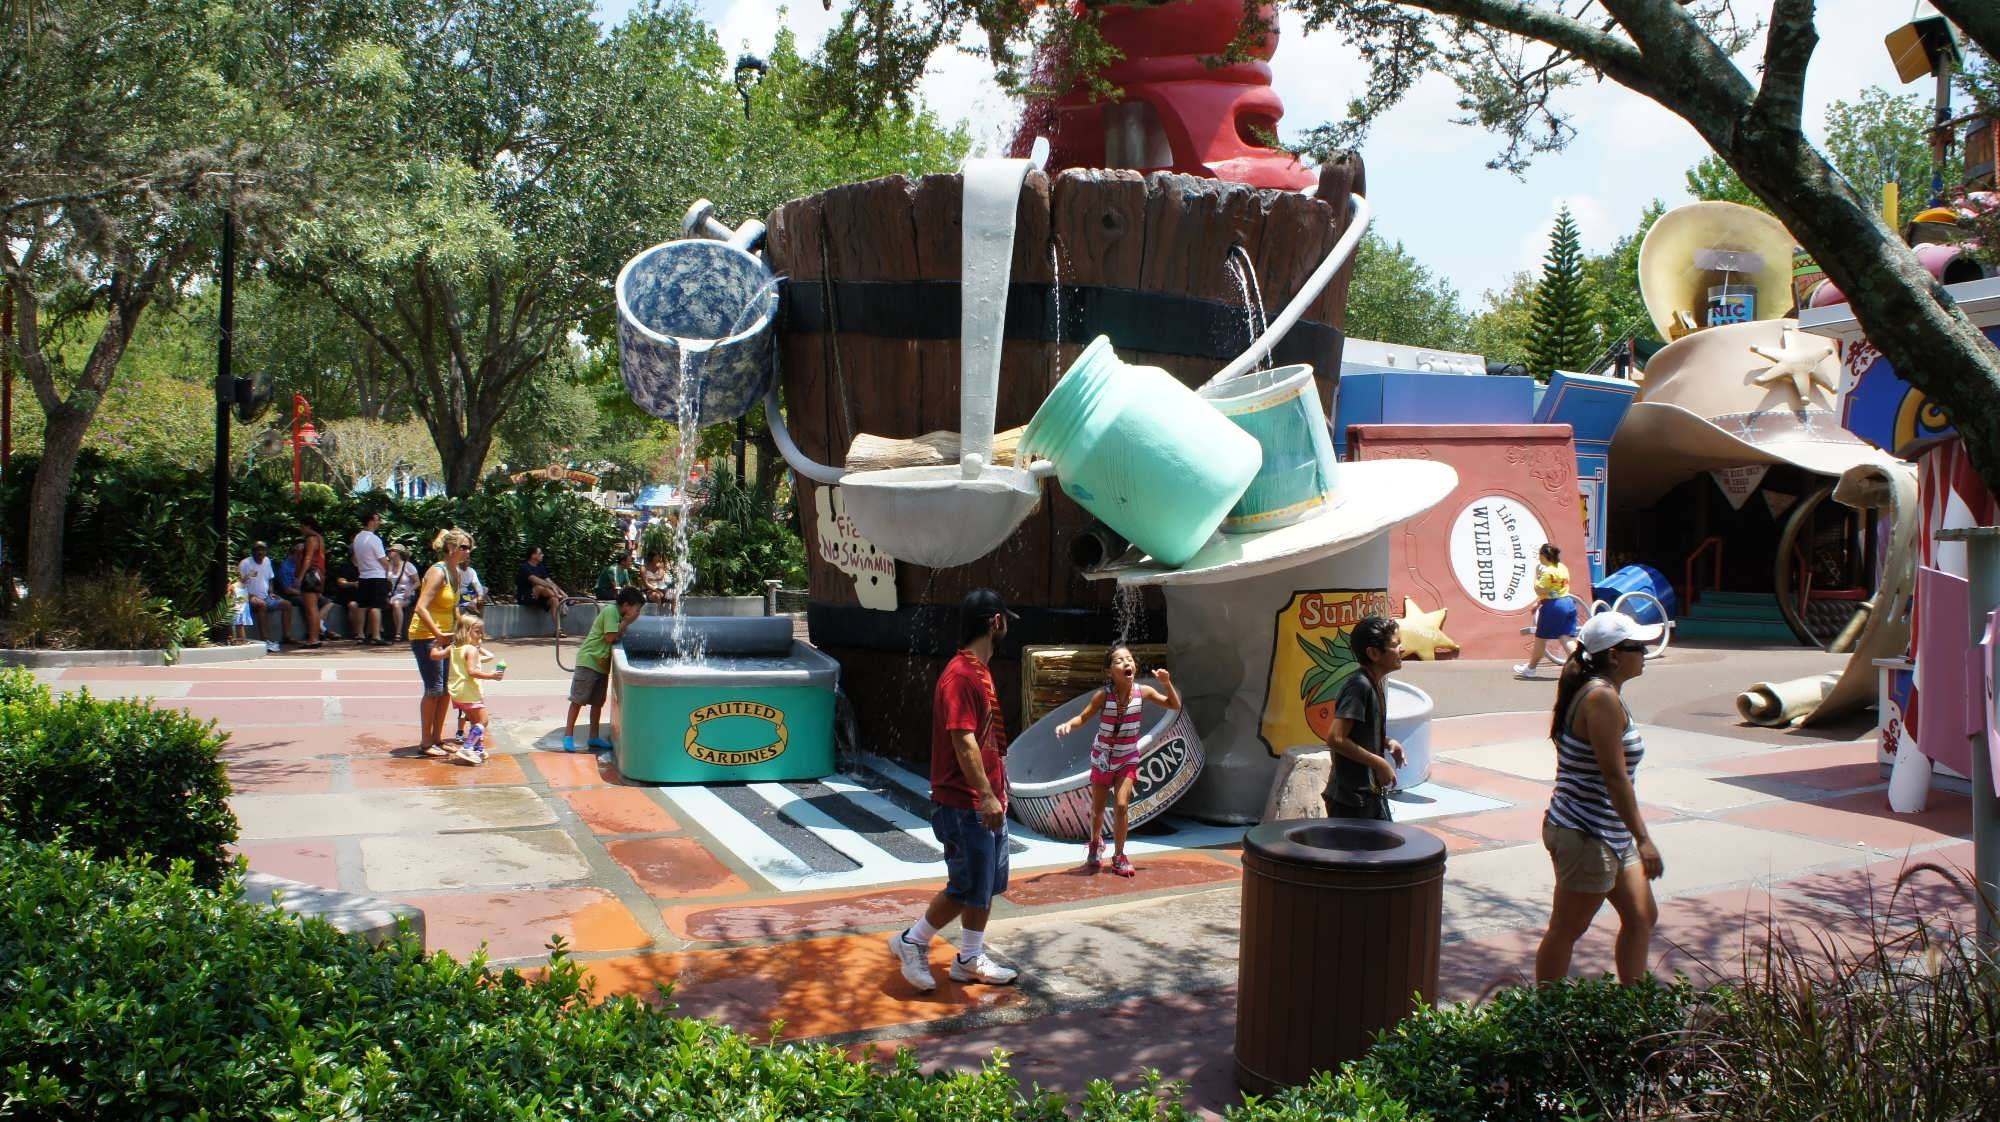 Fievel's Playland at Universal Studios Florida.